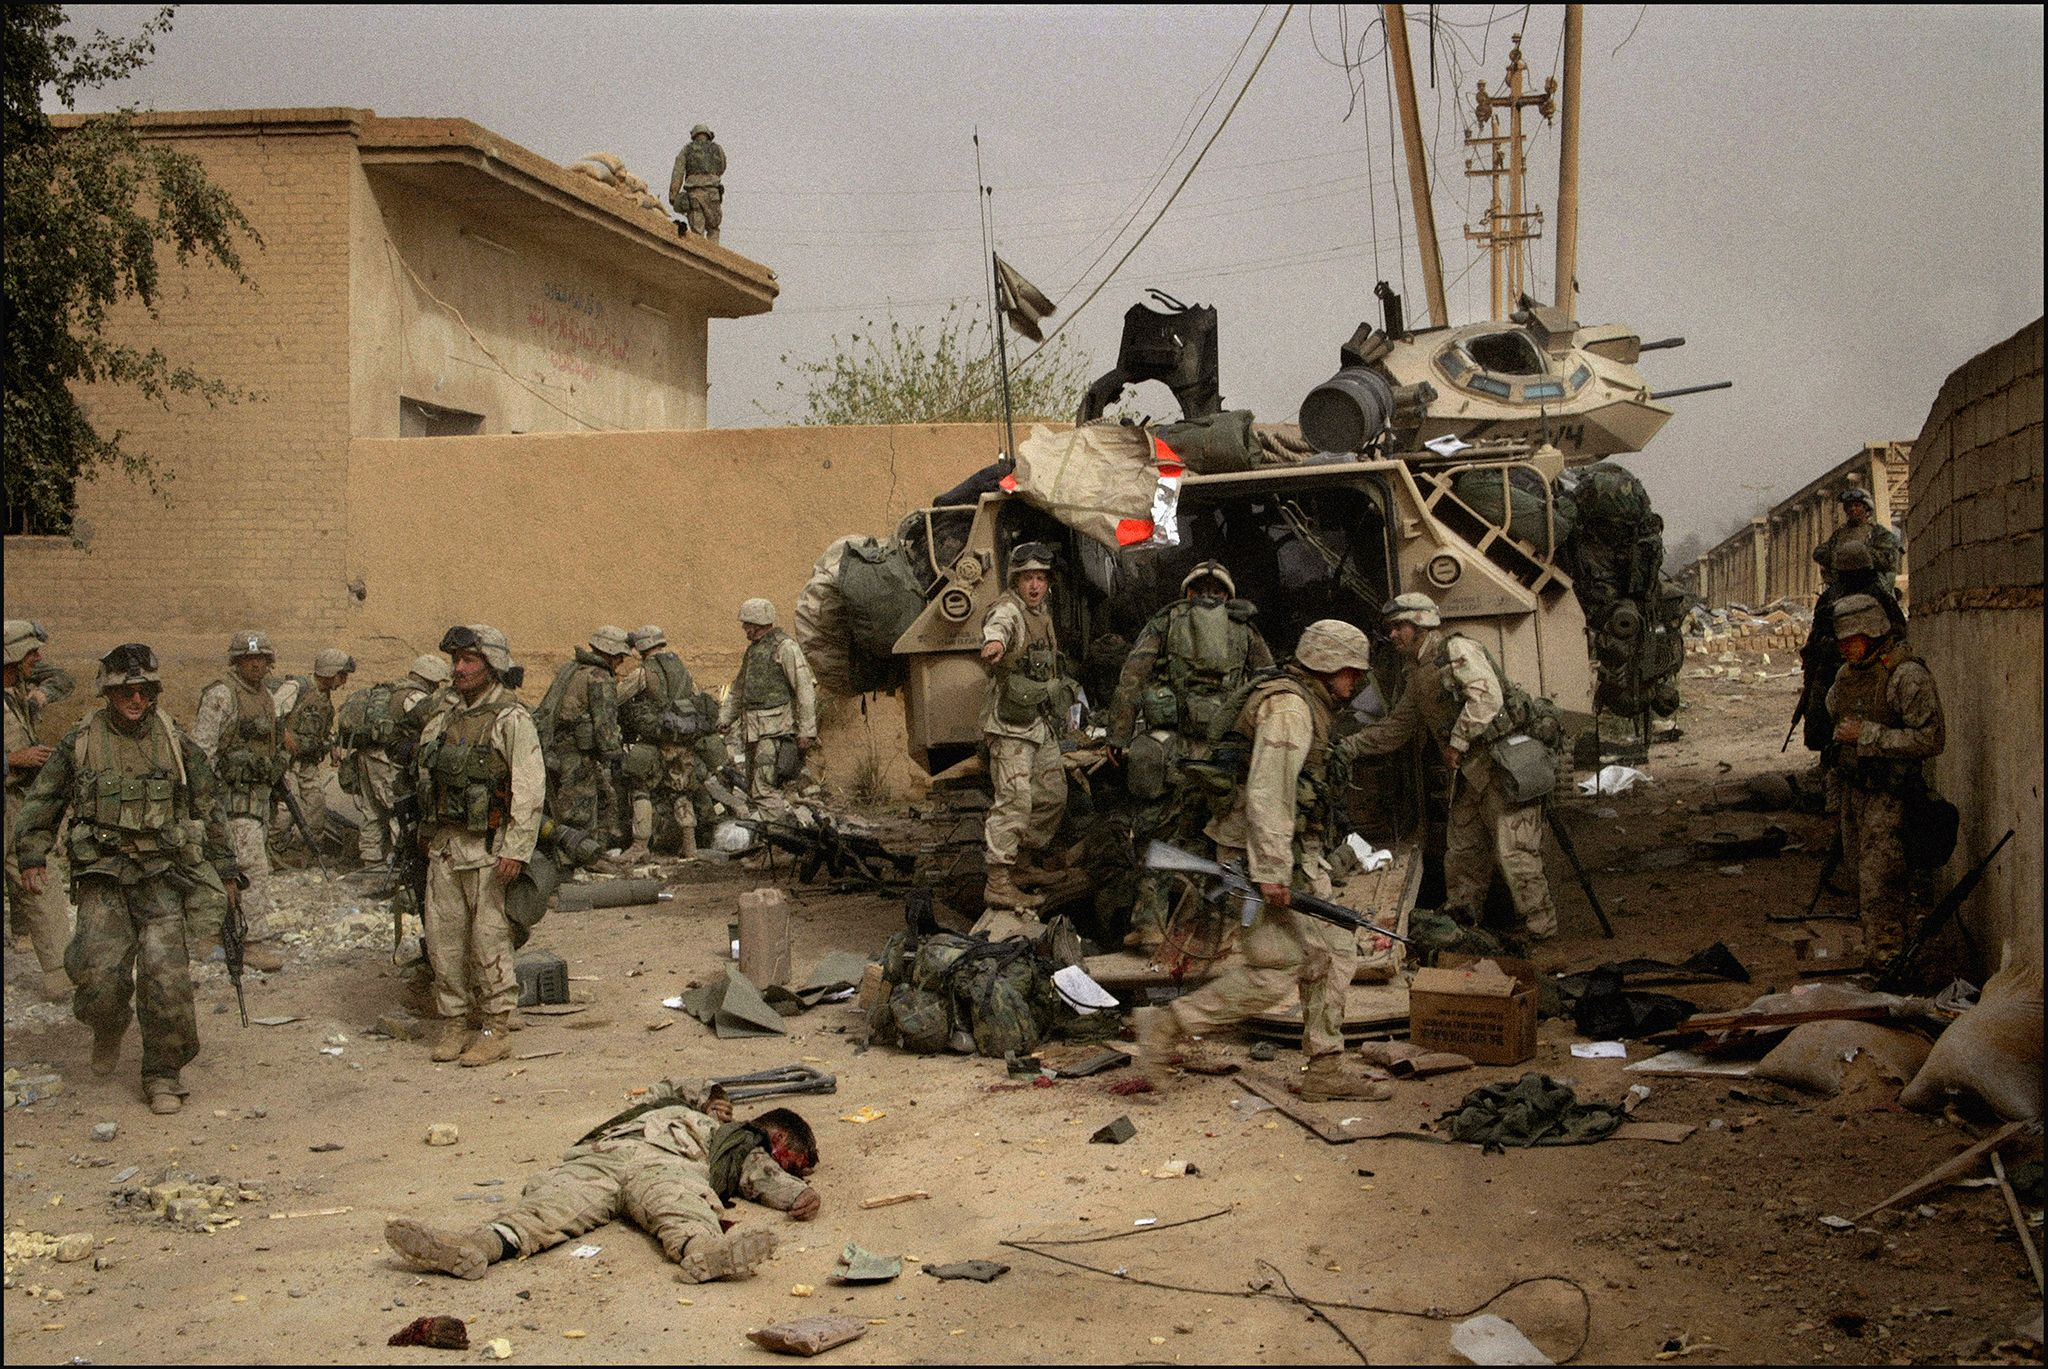 the american invasion of iraq This describes whether or not the american invasion on iraq was legal or illegal under international law.